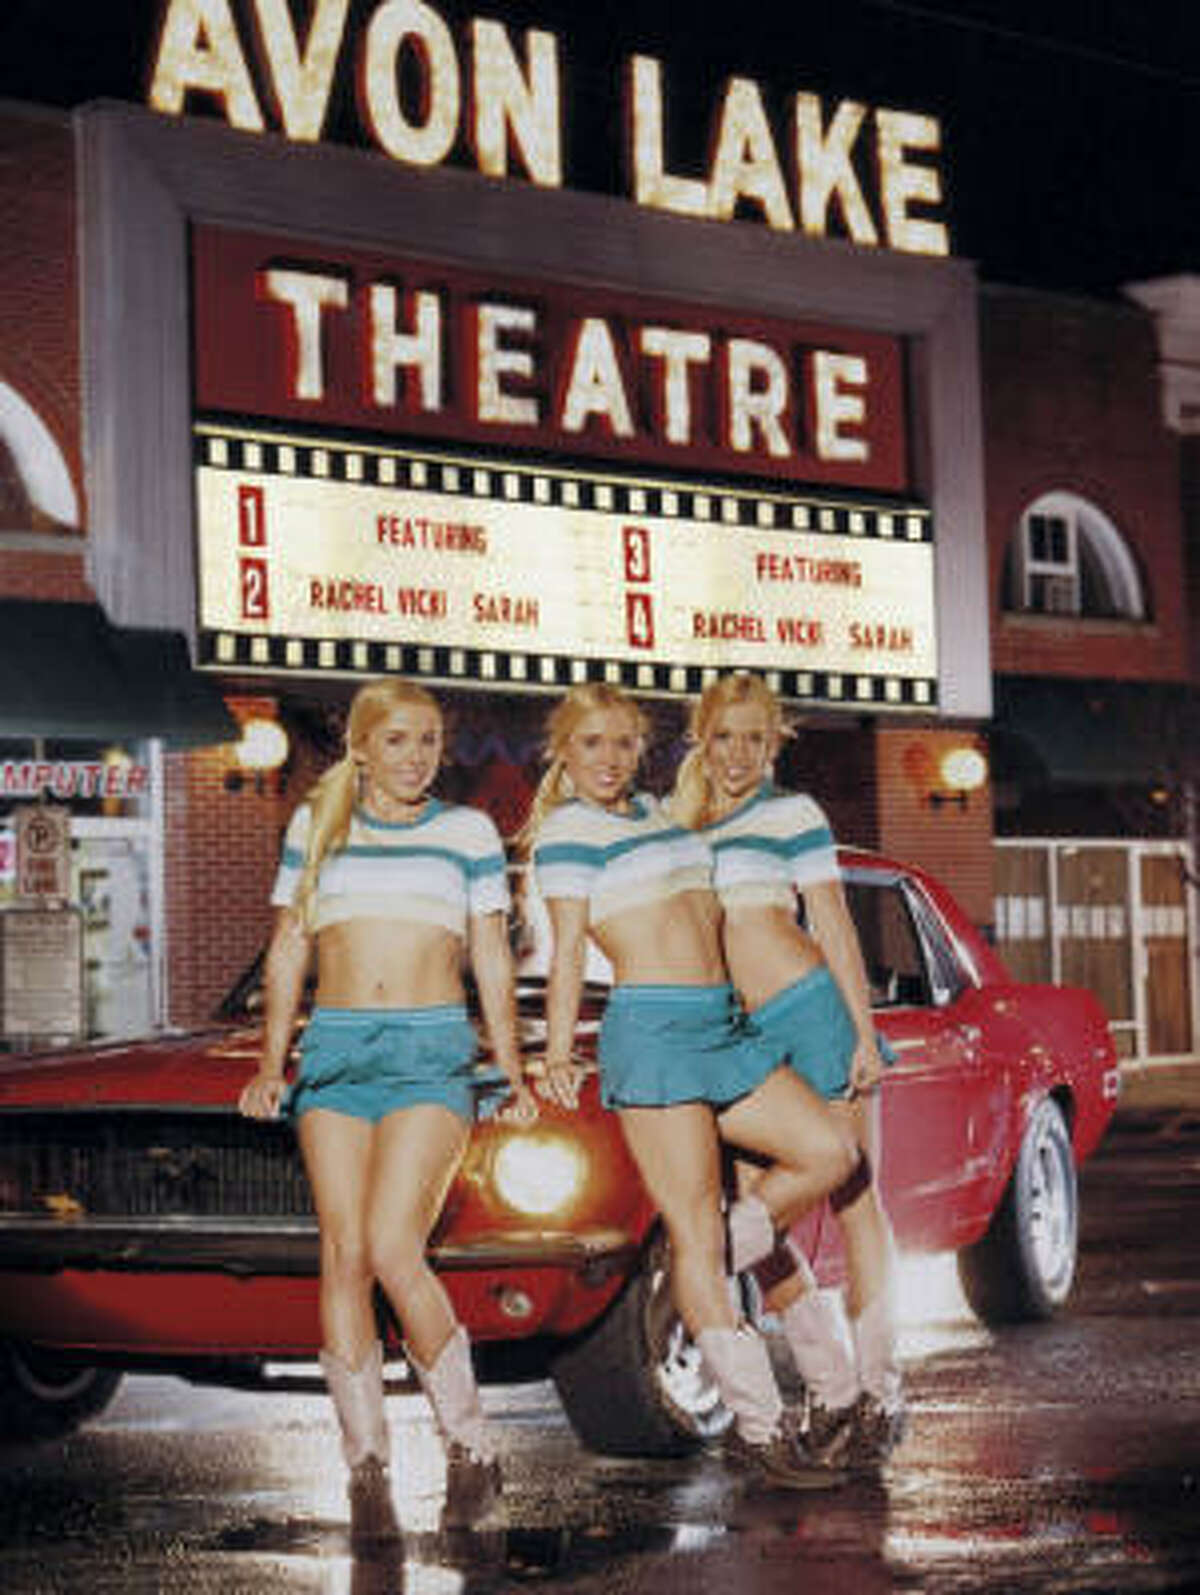 The 23-year-old Satterfield sisters - Rachel, Vicki and Sarah - are featured in the current issue of Playboy.